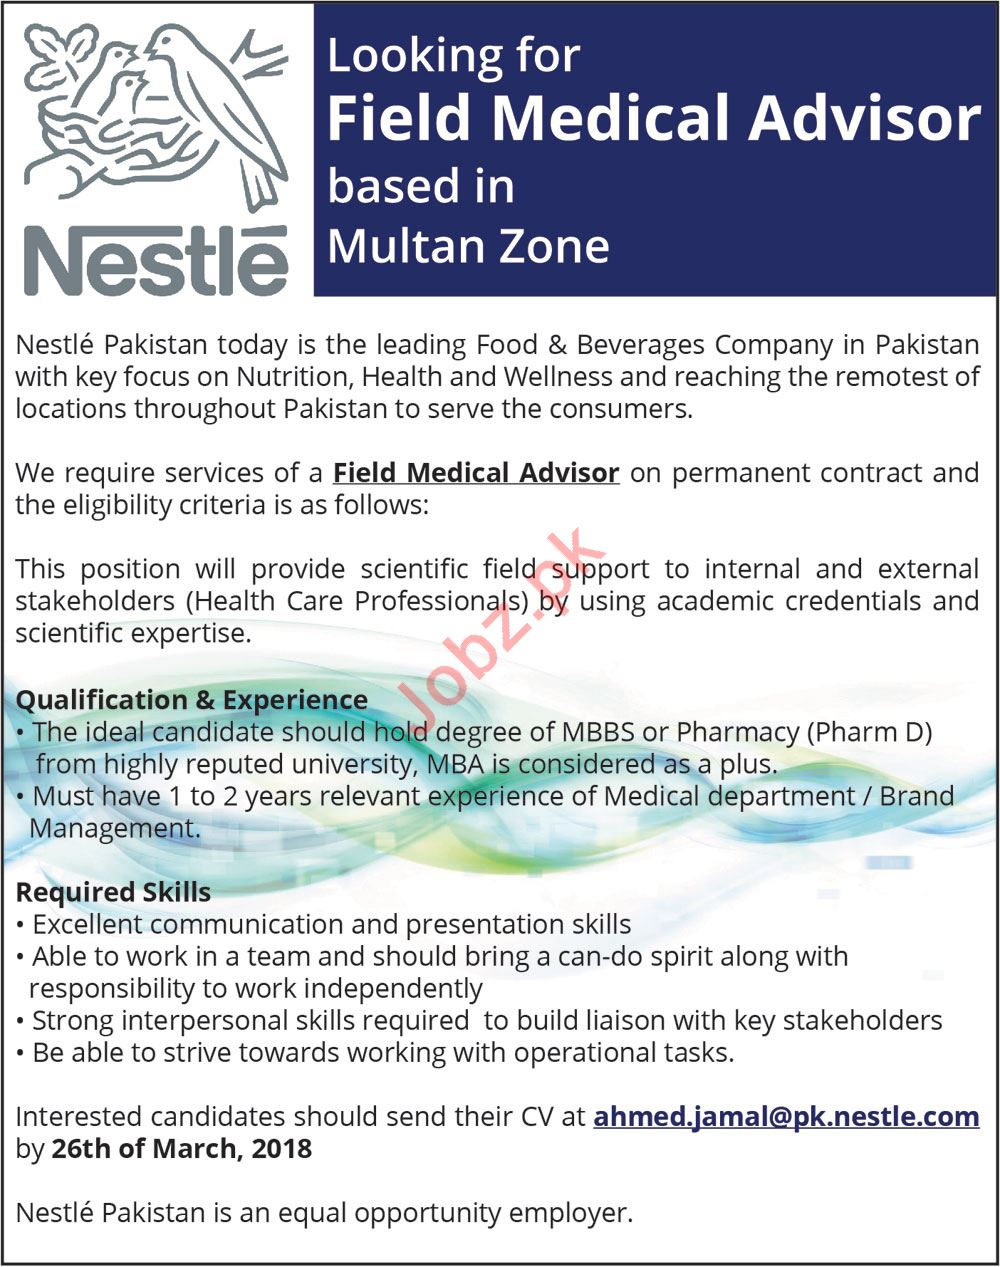 nestle pakistan career opportunities 2019 job